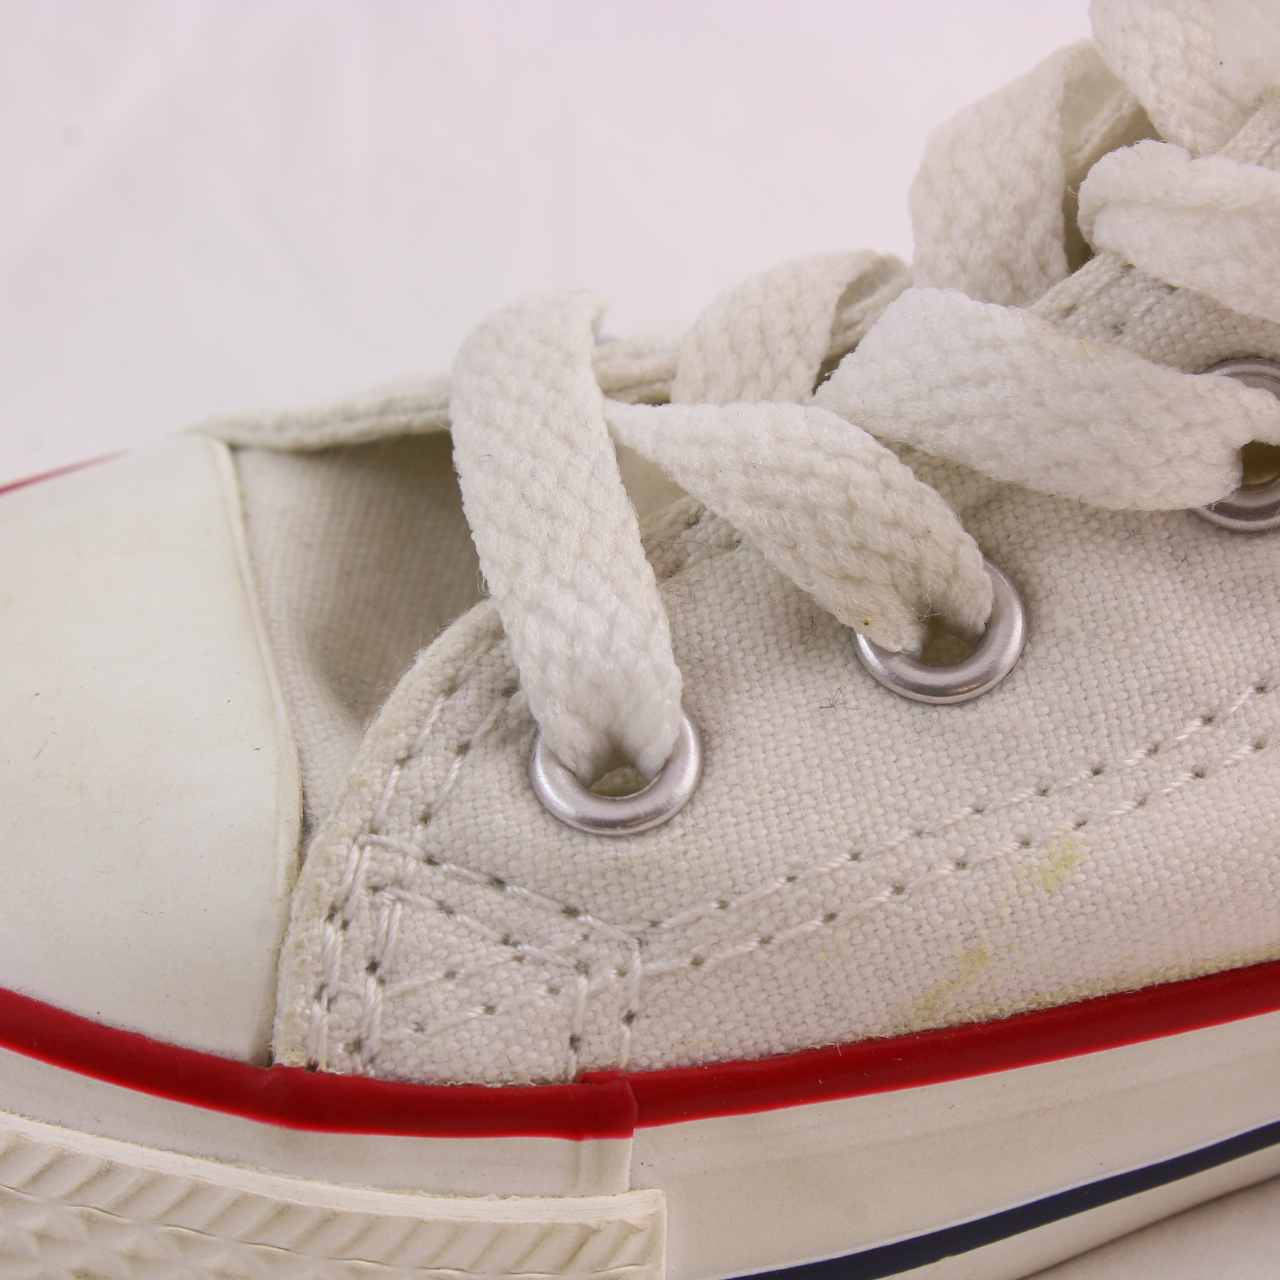 401500a532609d Sentinel Kids Converse White Textile Lace Up Kids Size UK 8 Infant  Ex- Display. Sentinel Thumbnail 6